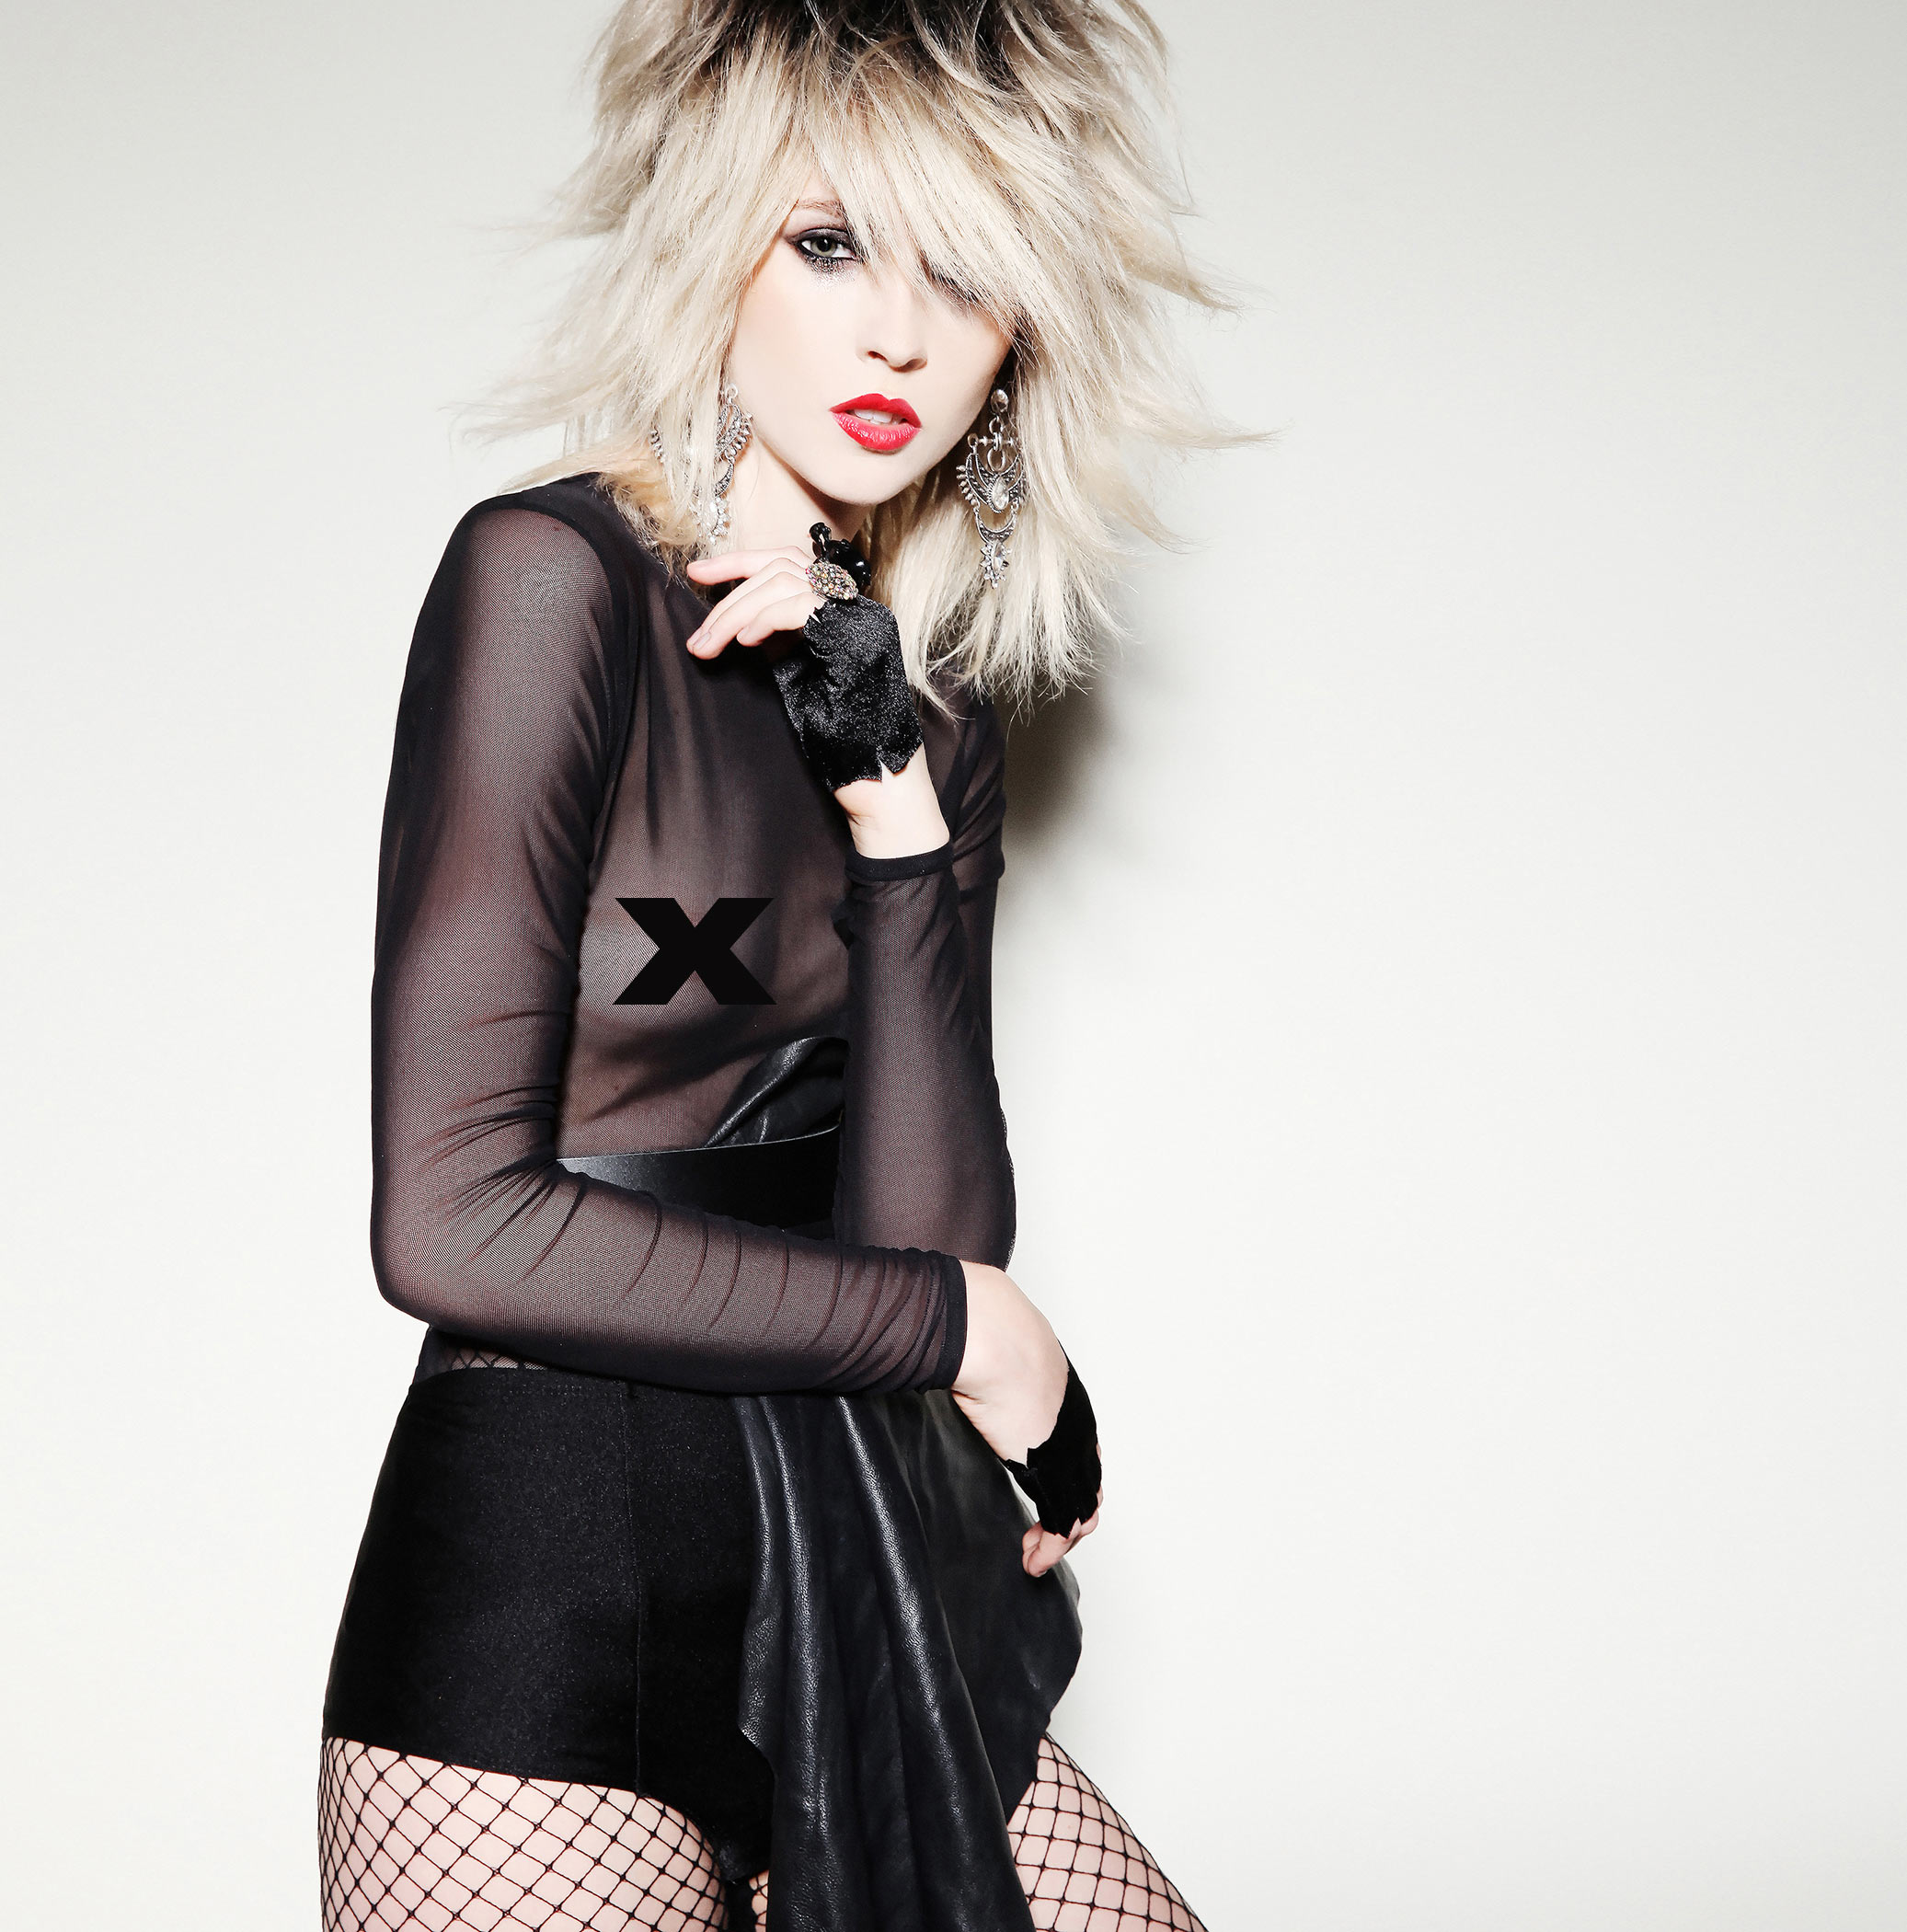 contessa-finalist-salon-magazine-julie-vriesinga-paula-tizzard-hair-photography-competition-enternous-fashion-beauty